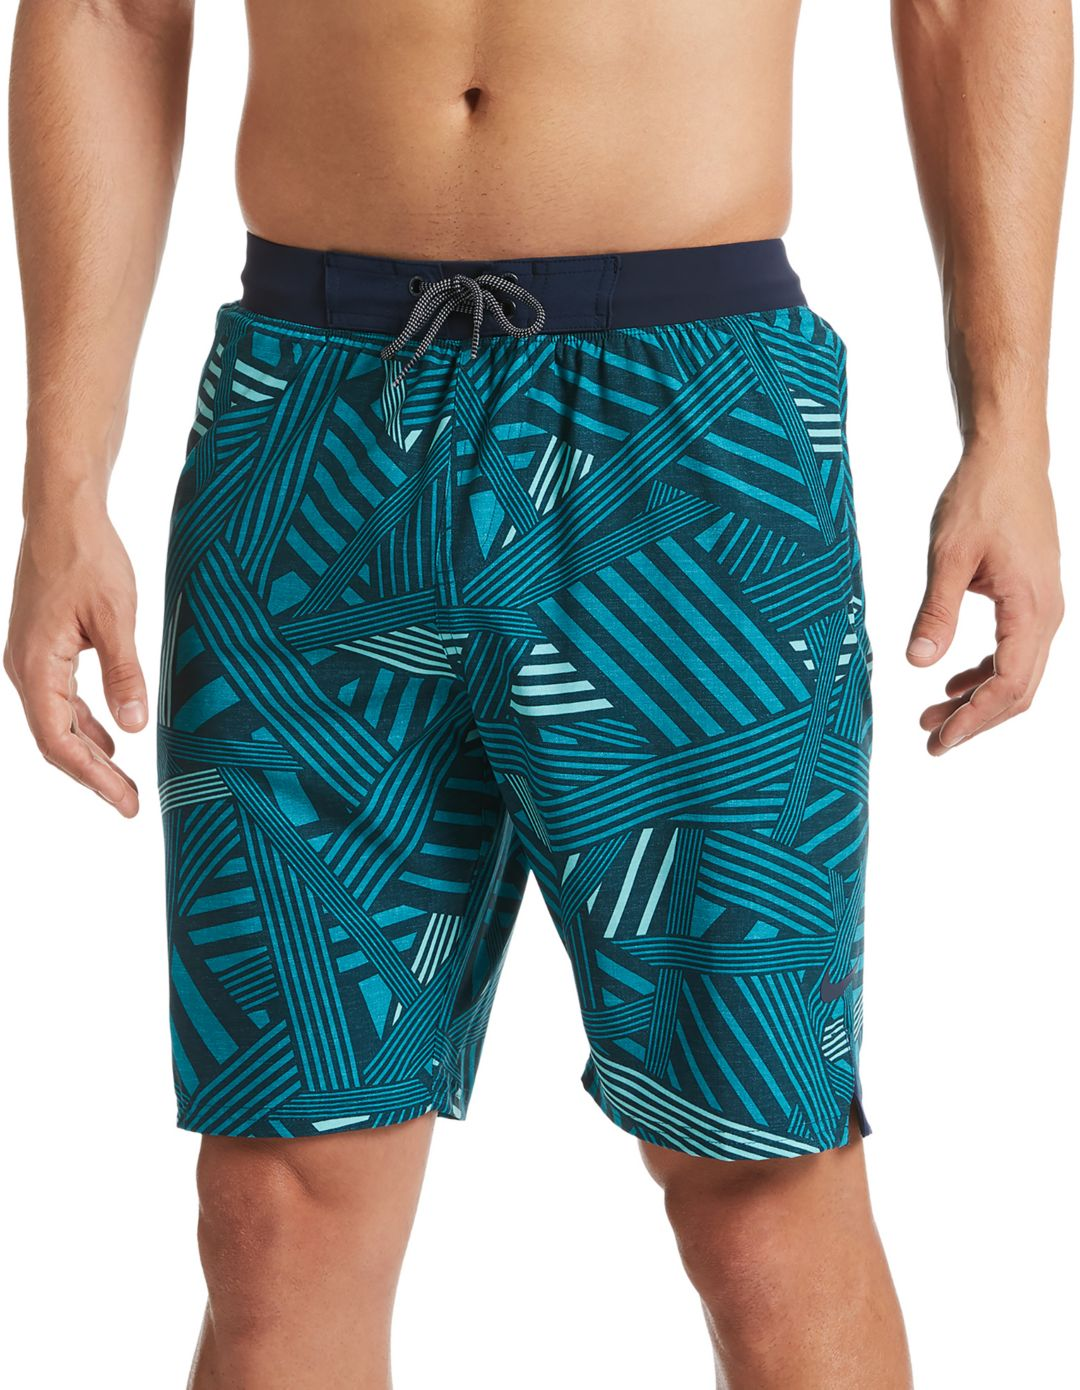 80d2f87024 Nike Men's 6:1 Dazzle Vital Volley Swim Trunks | DICK'S Sporting Goods